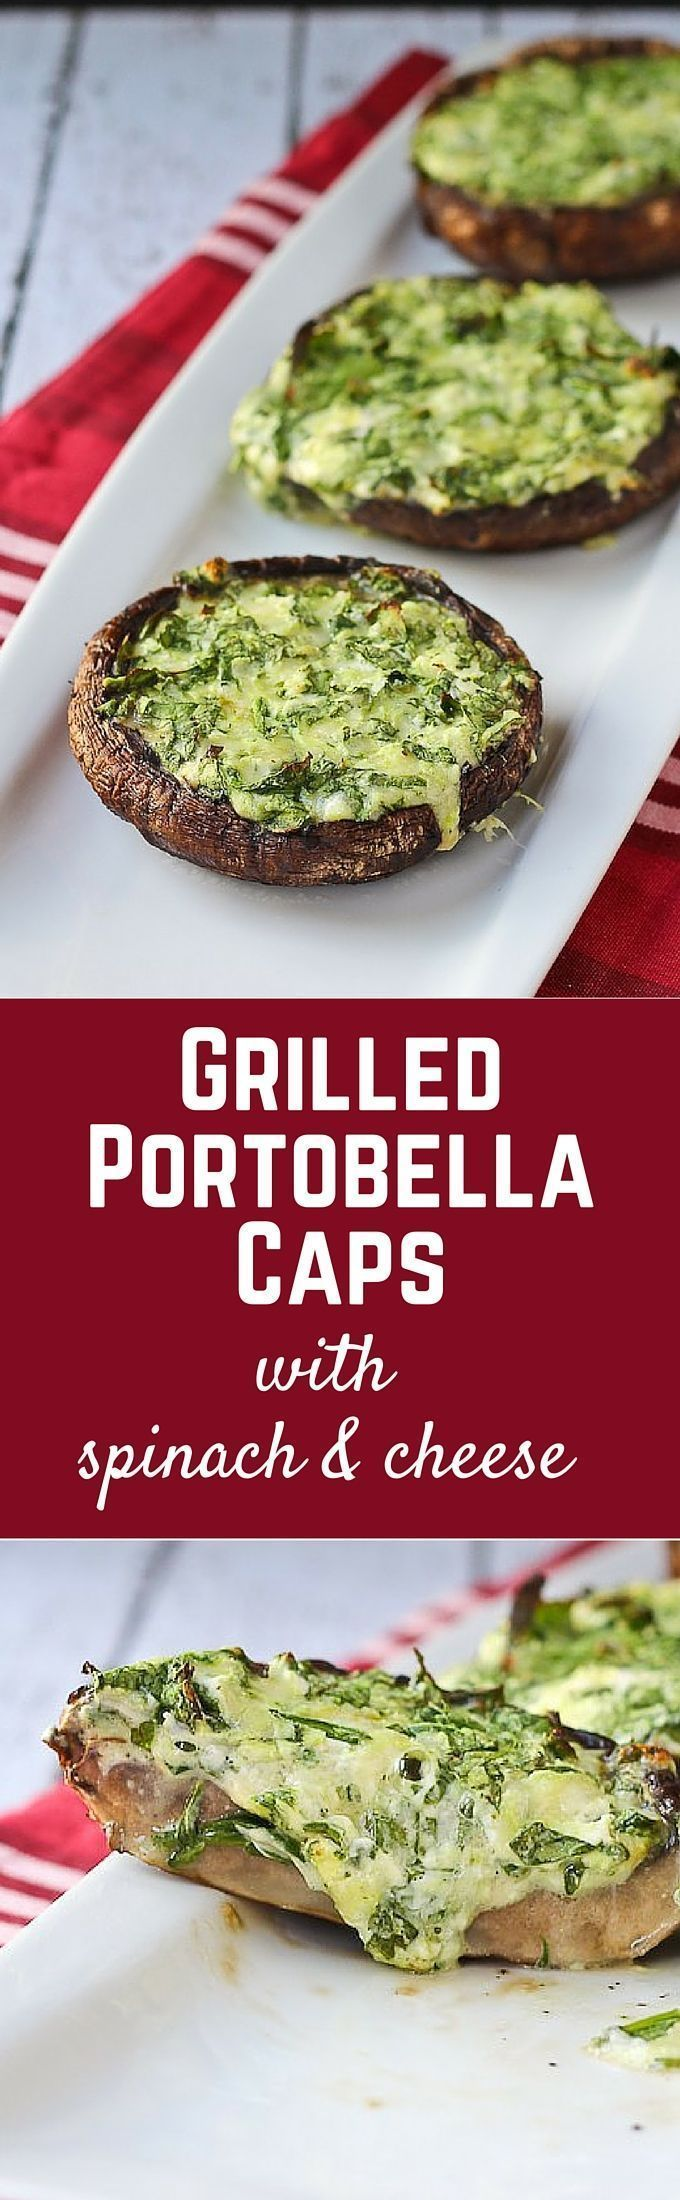 Grilled Portobella Mushroom Caps with Spinach and Cheese will become your must-have grilling side dish or vegetarian meal! Get the easy recipe on http://RachelCooks.com!